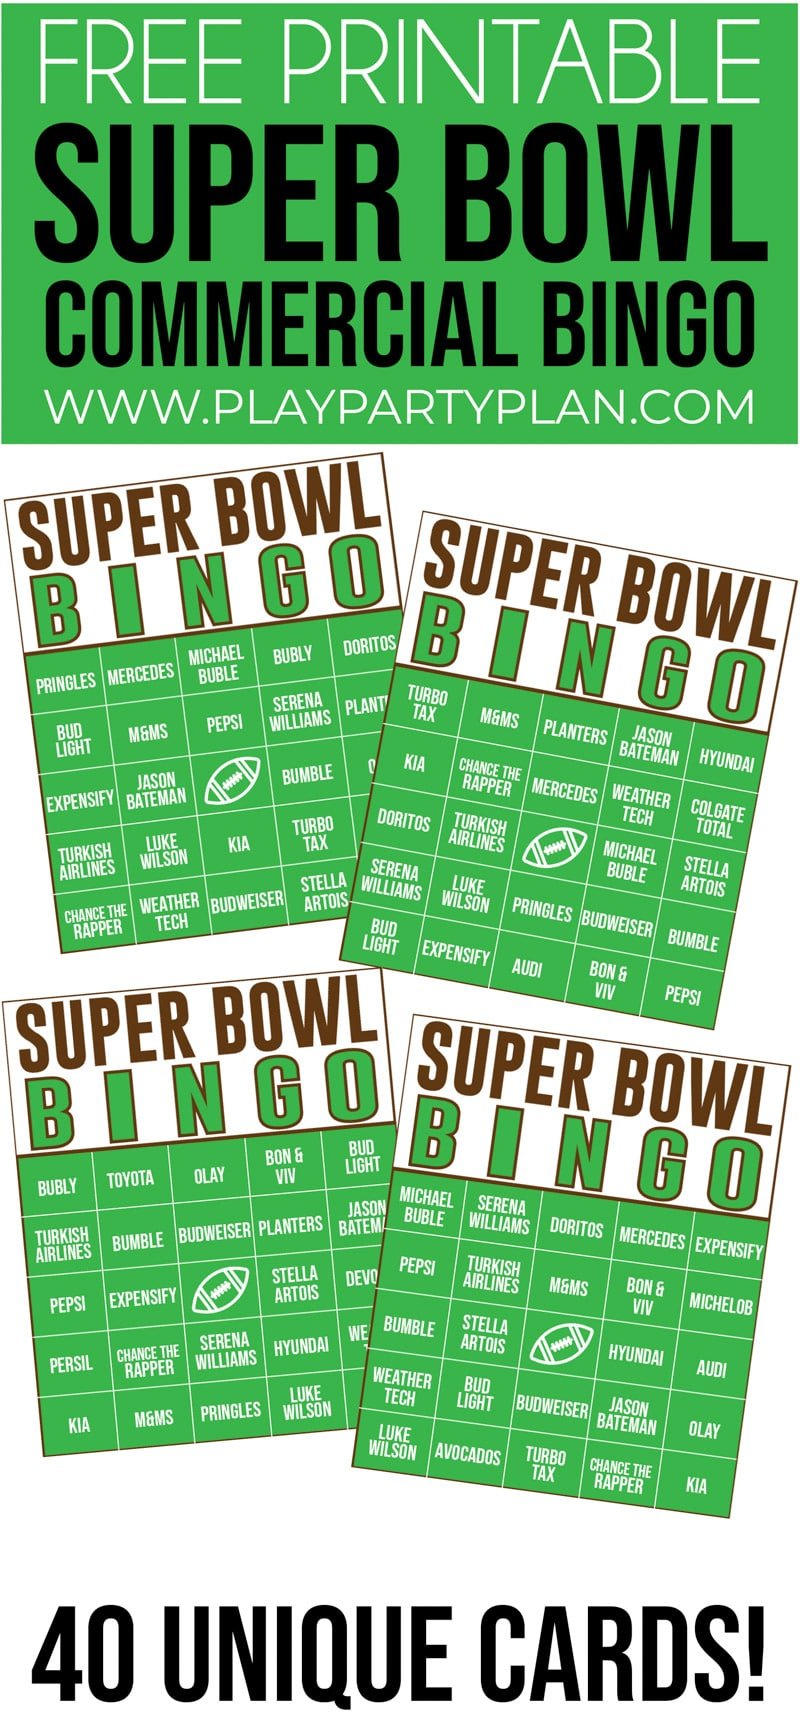 This Super Bowl Commercial bingo is one of the best Super Bowl party games ever! Perfect for for kids or adults!